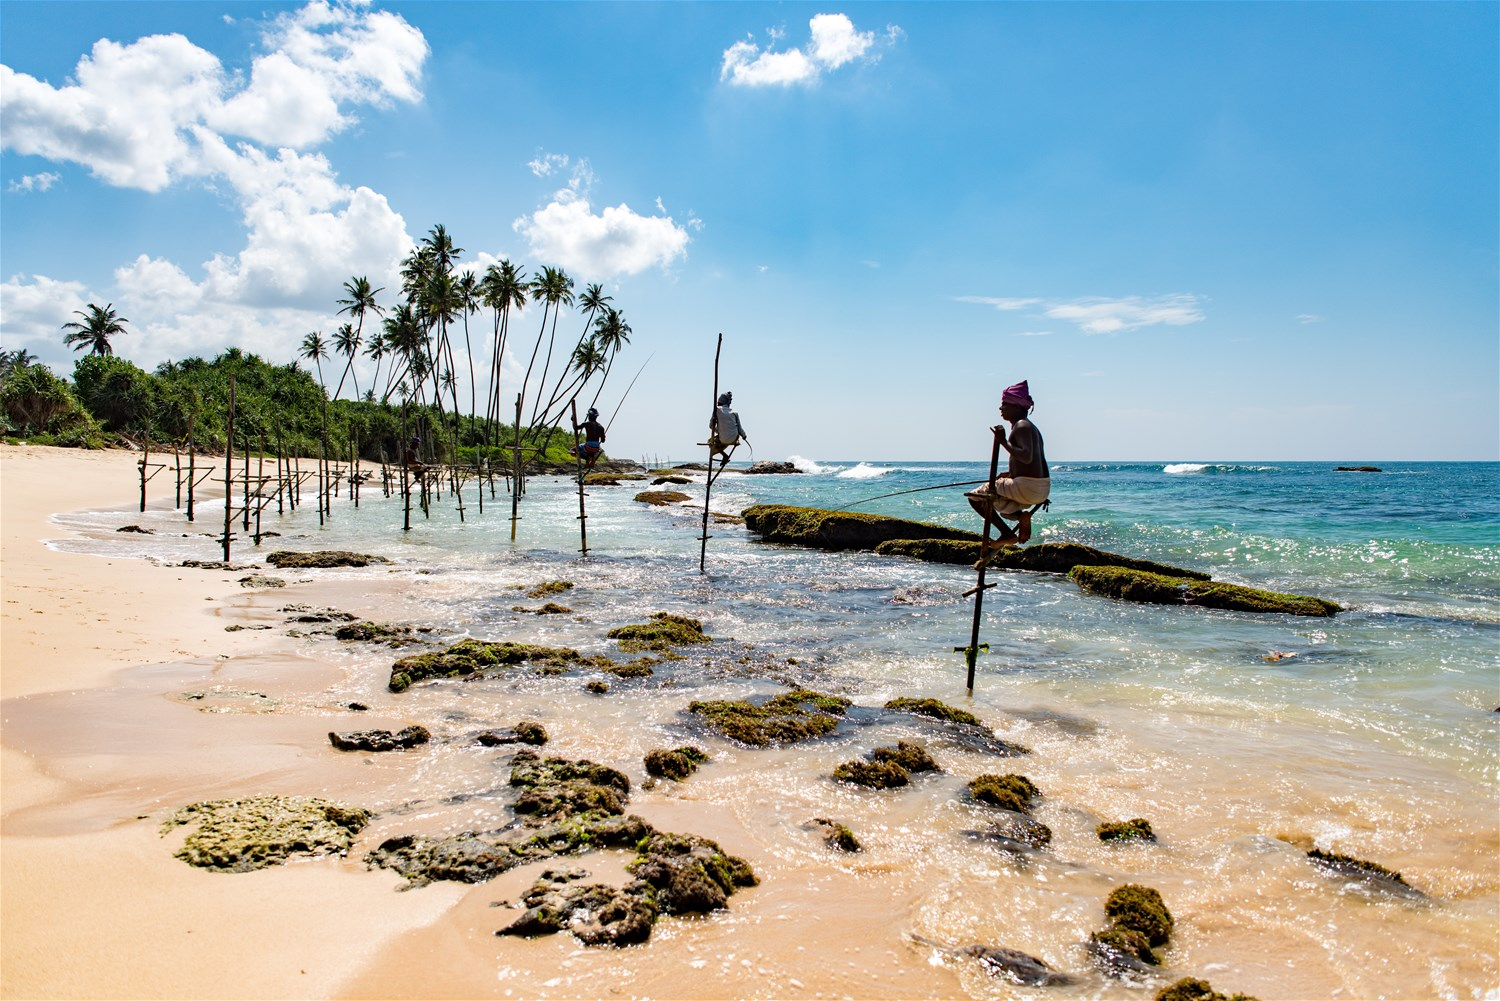 When is the best time to visit Sri Lanka?